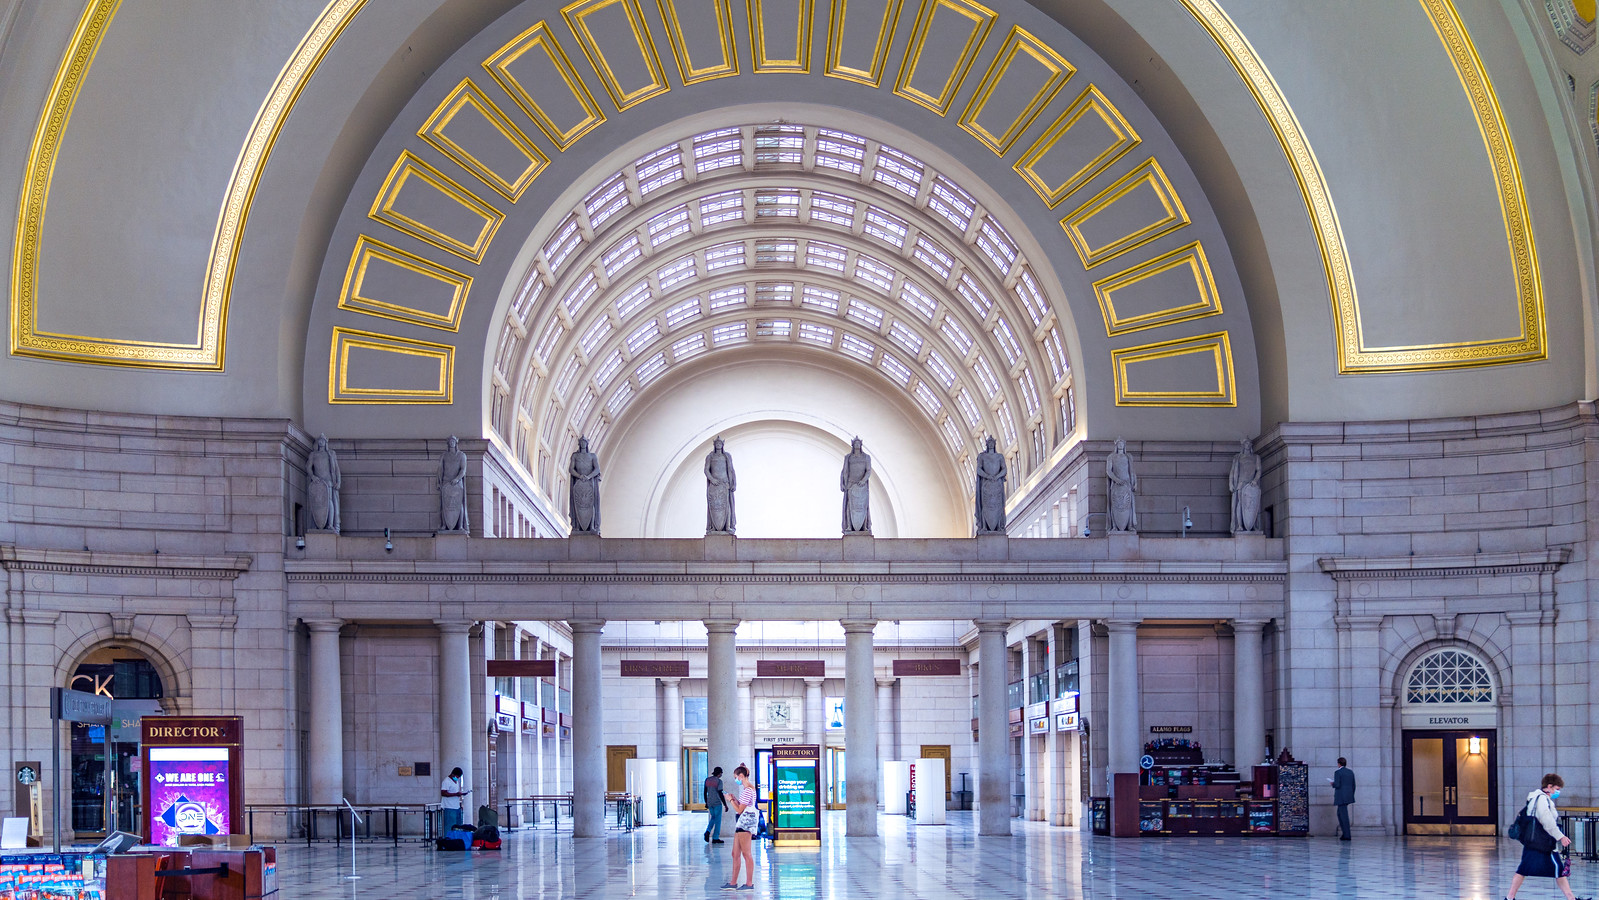 Thanks for publishing my photo, in Federal Railroad Administration Will Revisit Union Station Proposal | Urban Turf